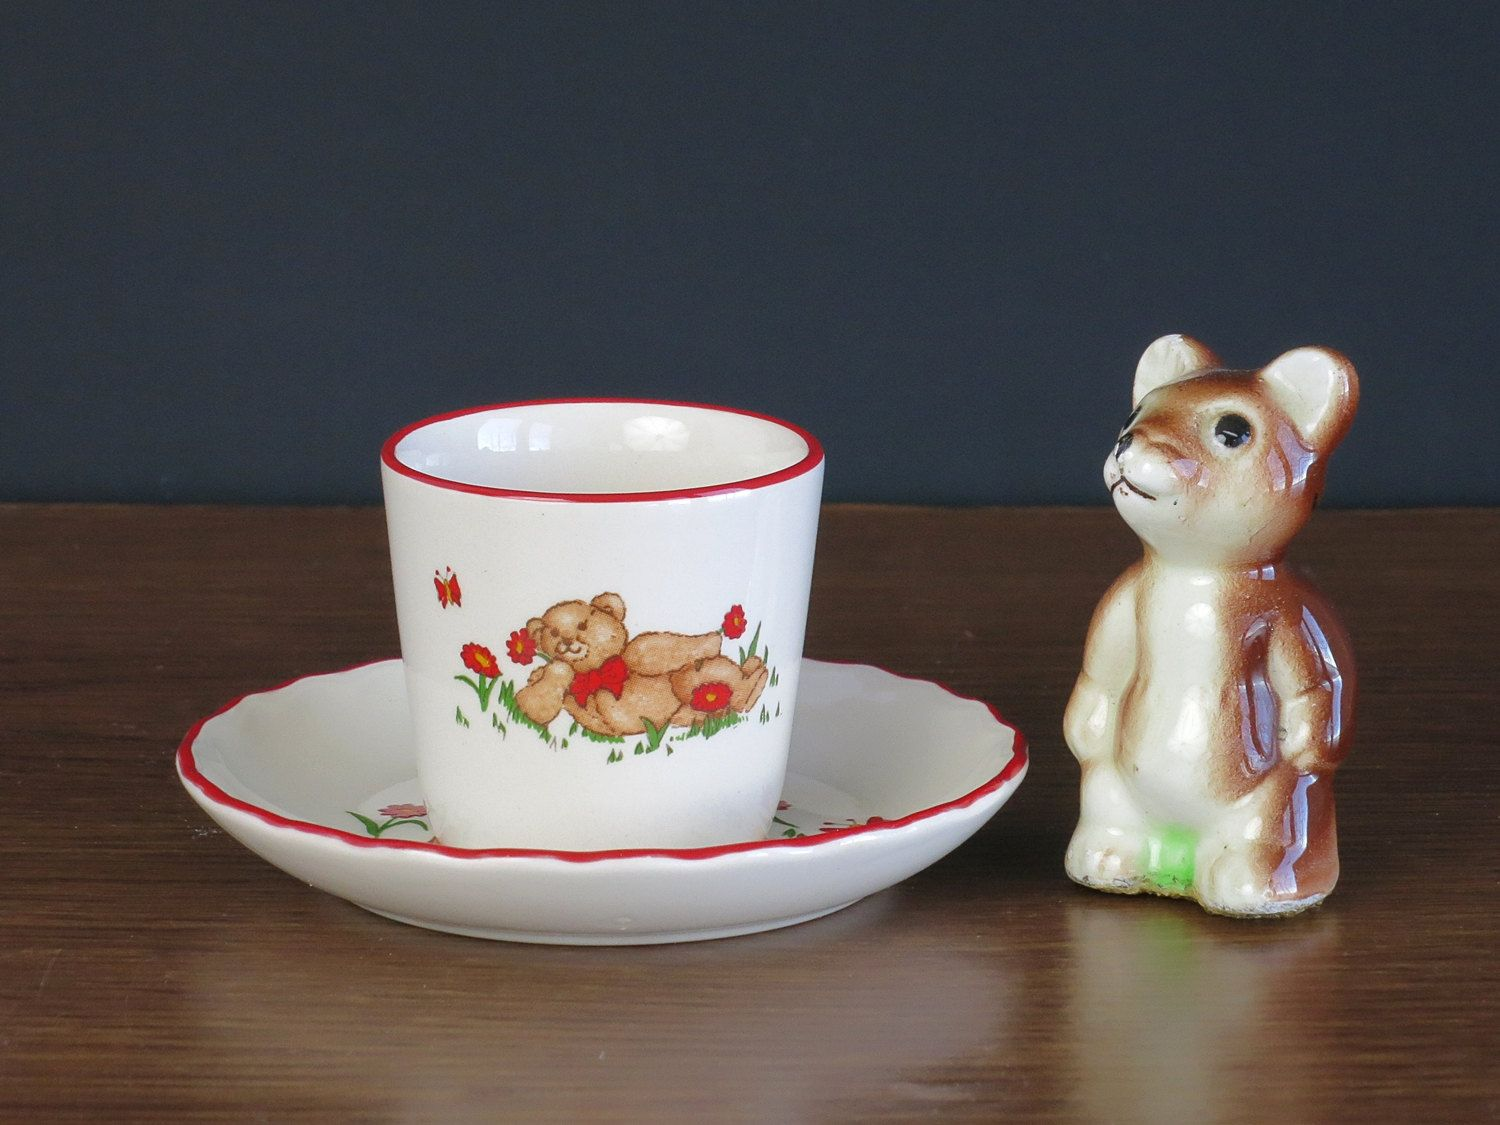 Mason S Teddy Bears Egg Cup And Plate Vintage Ironstone Egg Stand And Saucer Teddy Bear Children S Vintage Ironstone Childrens Dishes Unique Items Products